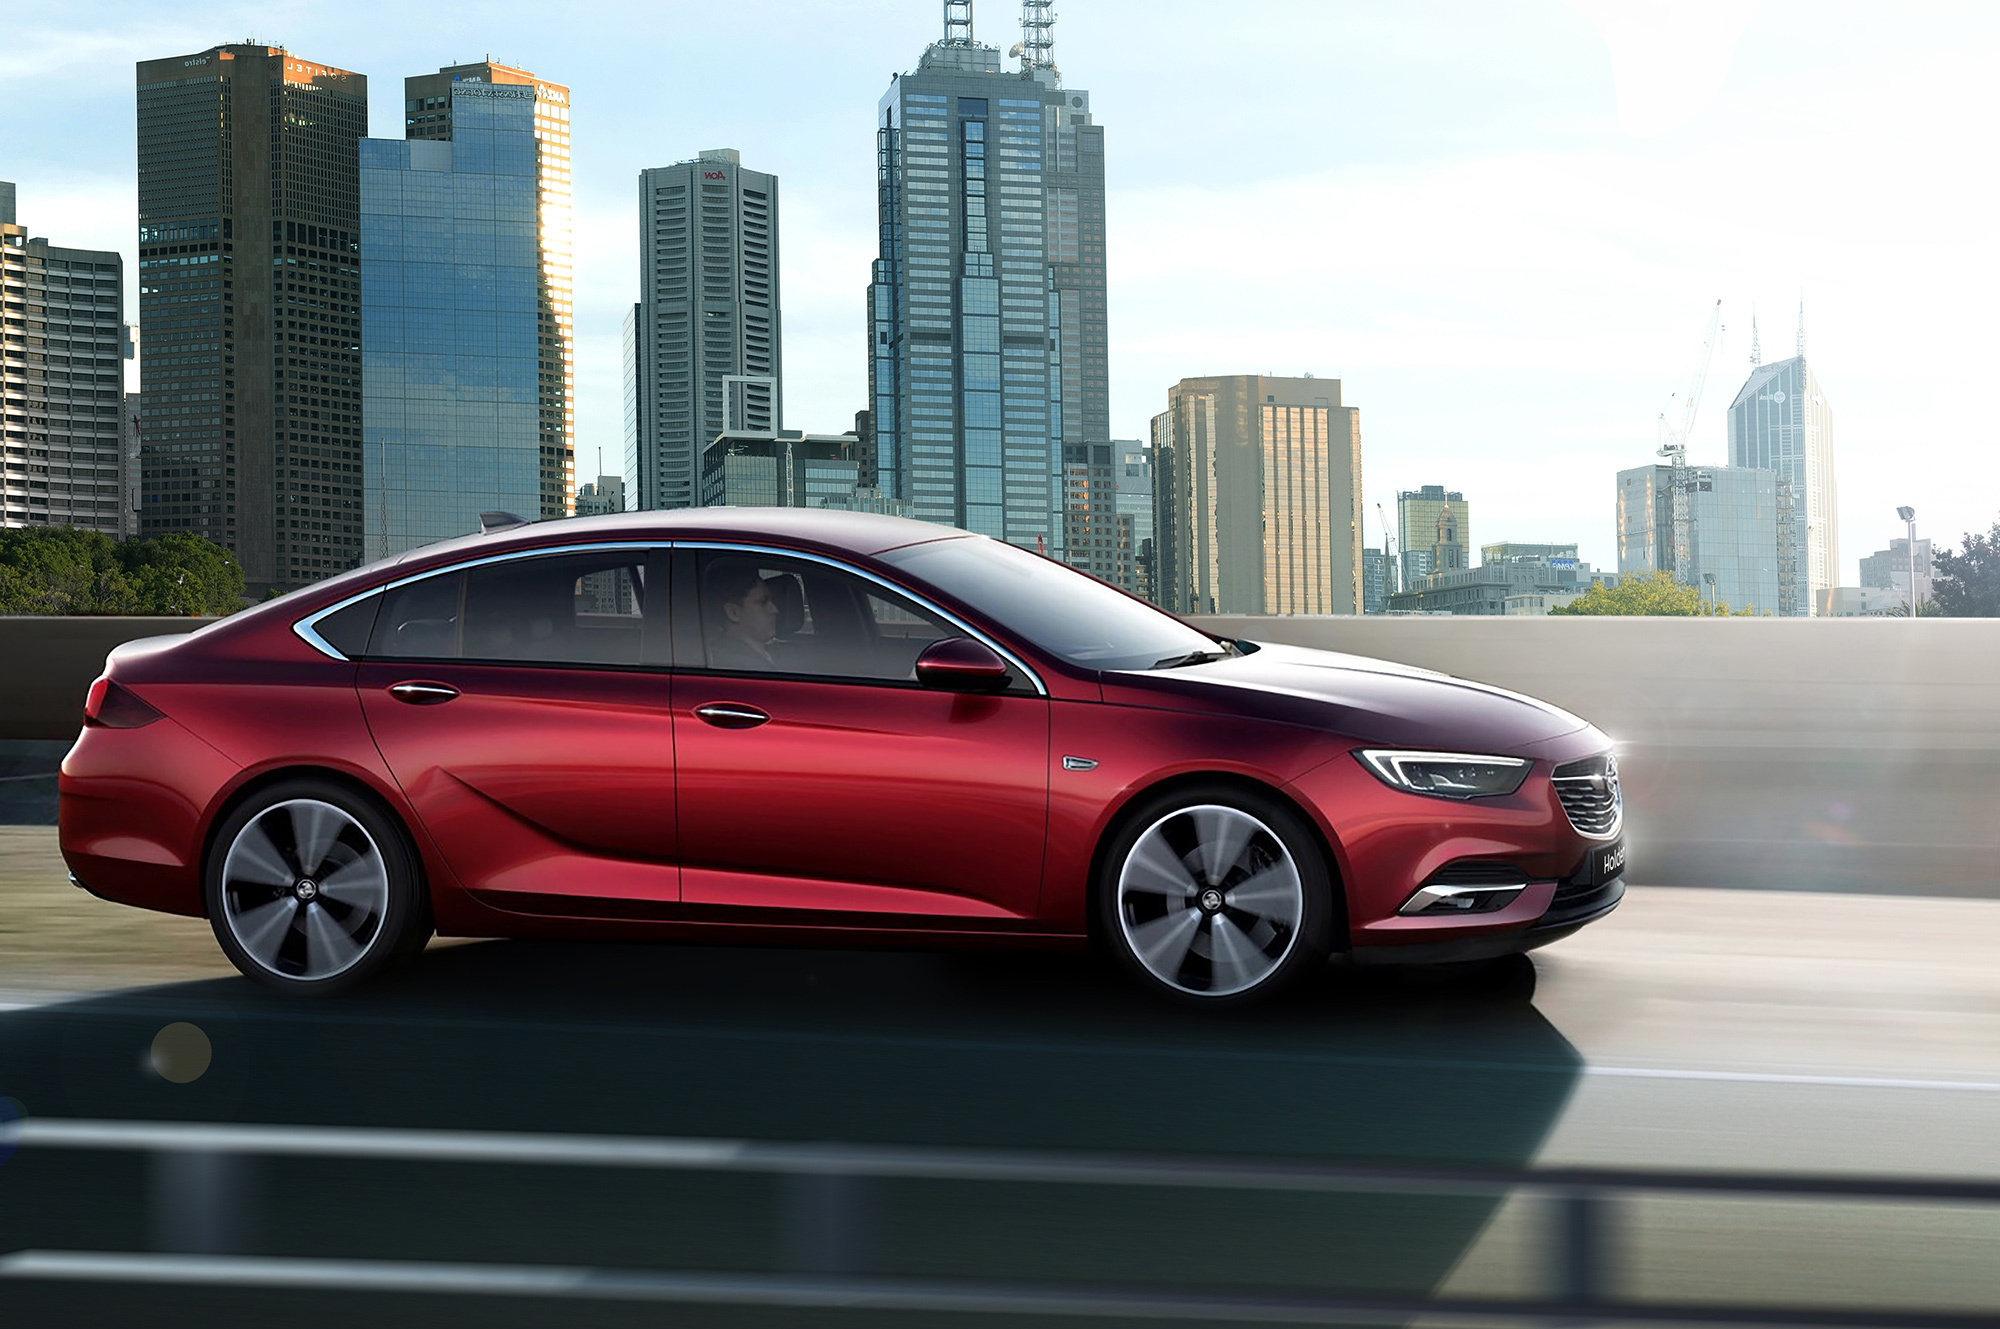 Holden Commodore Wallpapers Hd